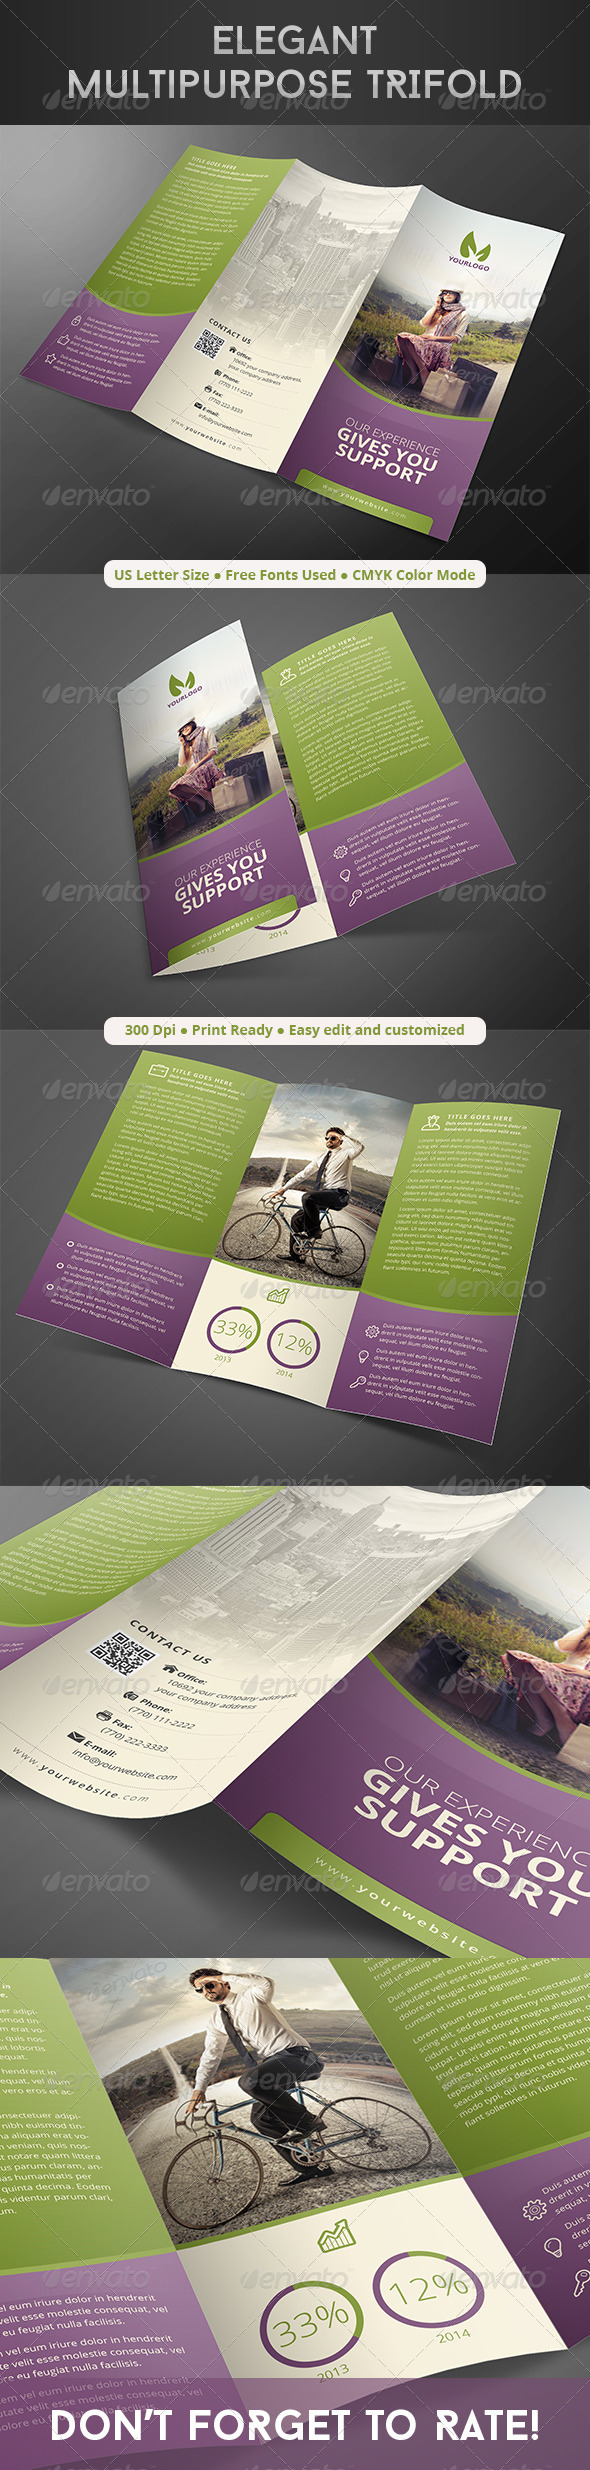 GraphicRiver Elegant Multipurpose Trifold 8282730